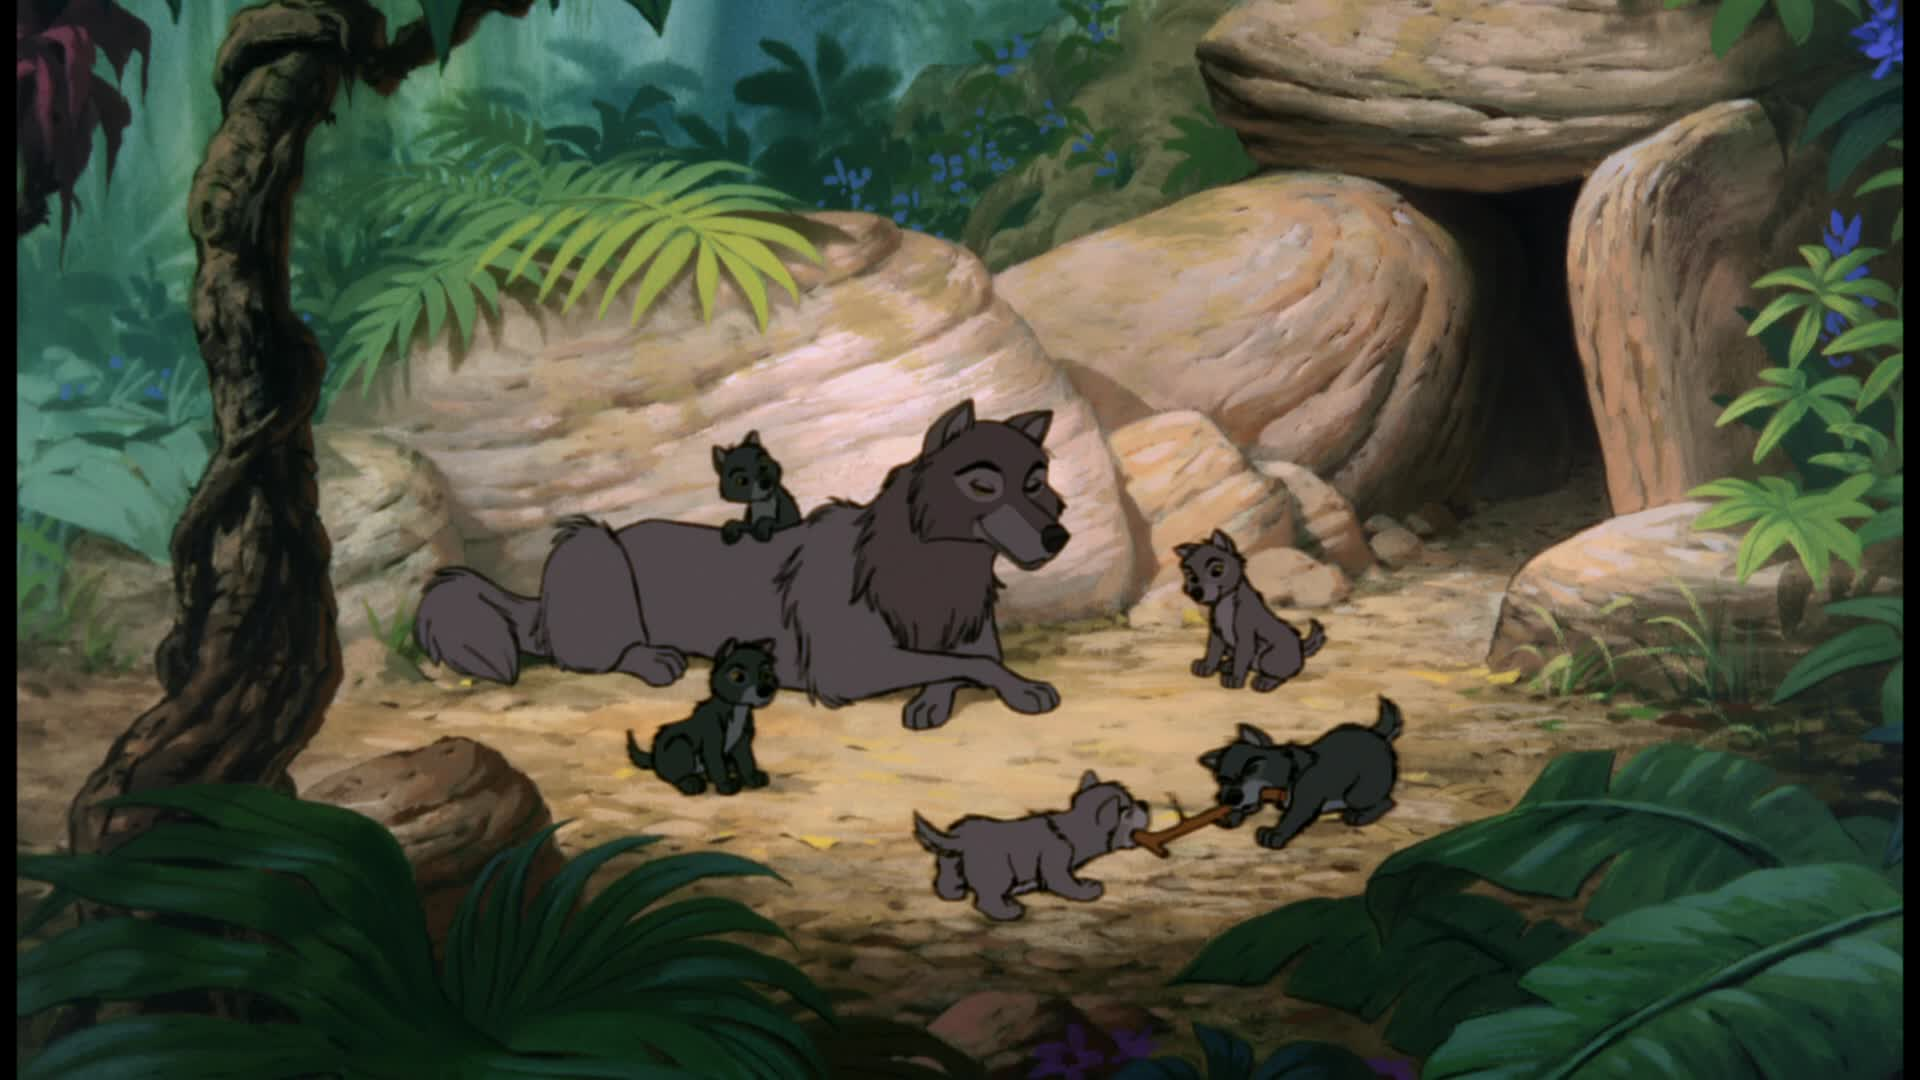 jungle book The jungle books has 76,811 ratings and 929 reviews joseph said: ebookonce again, i'm struck by the savagery that resonates throughout kipling's writi.